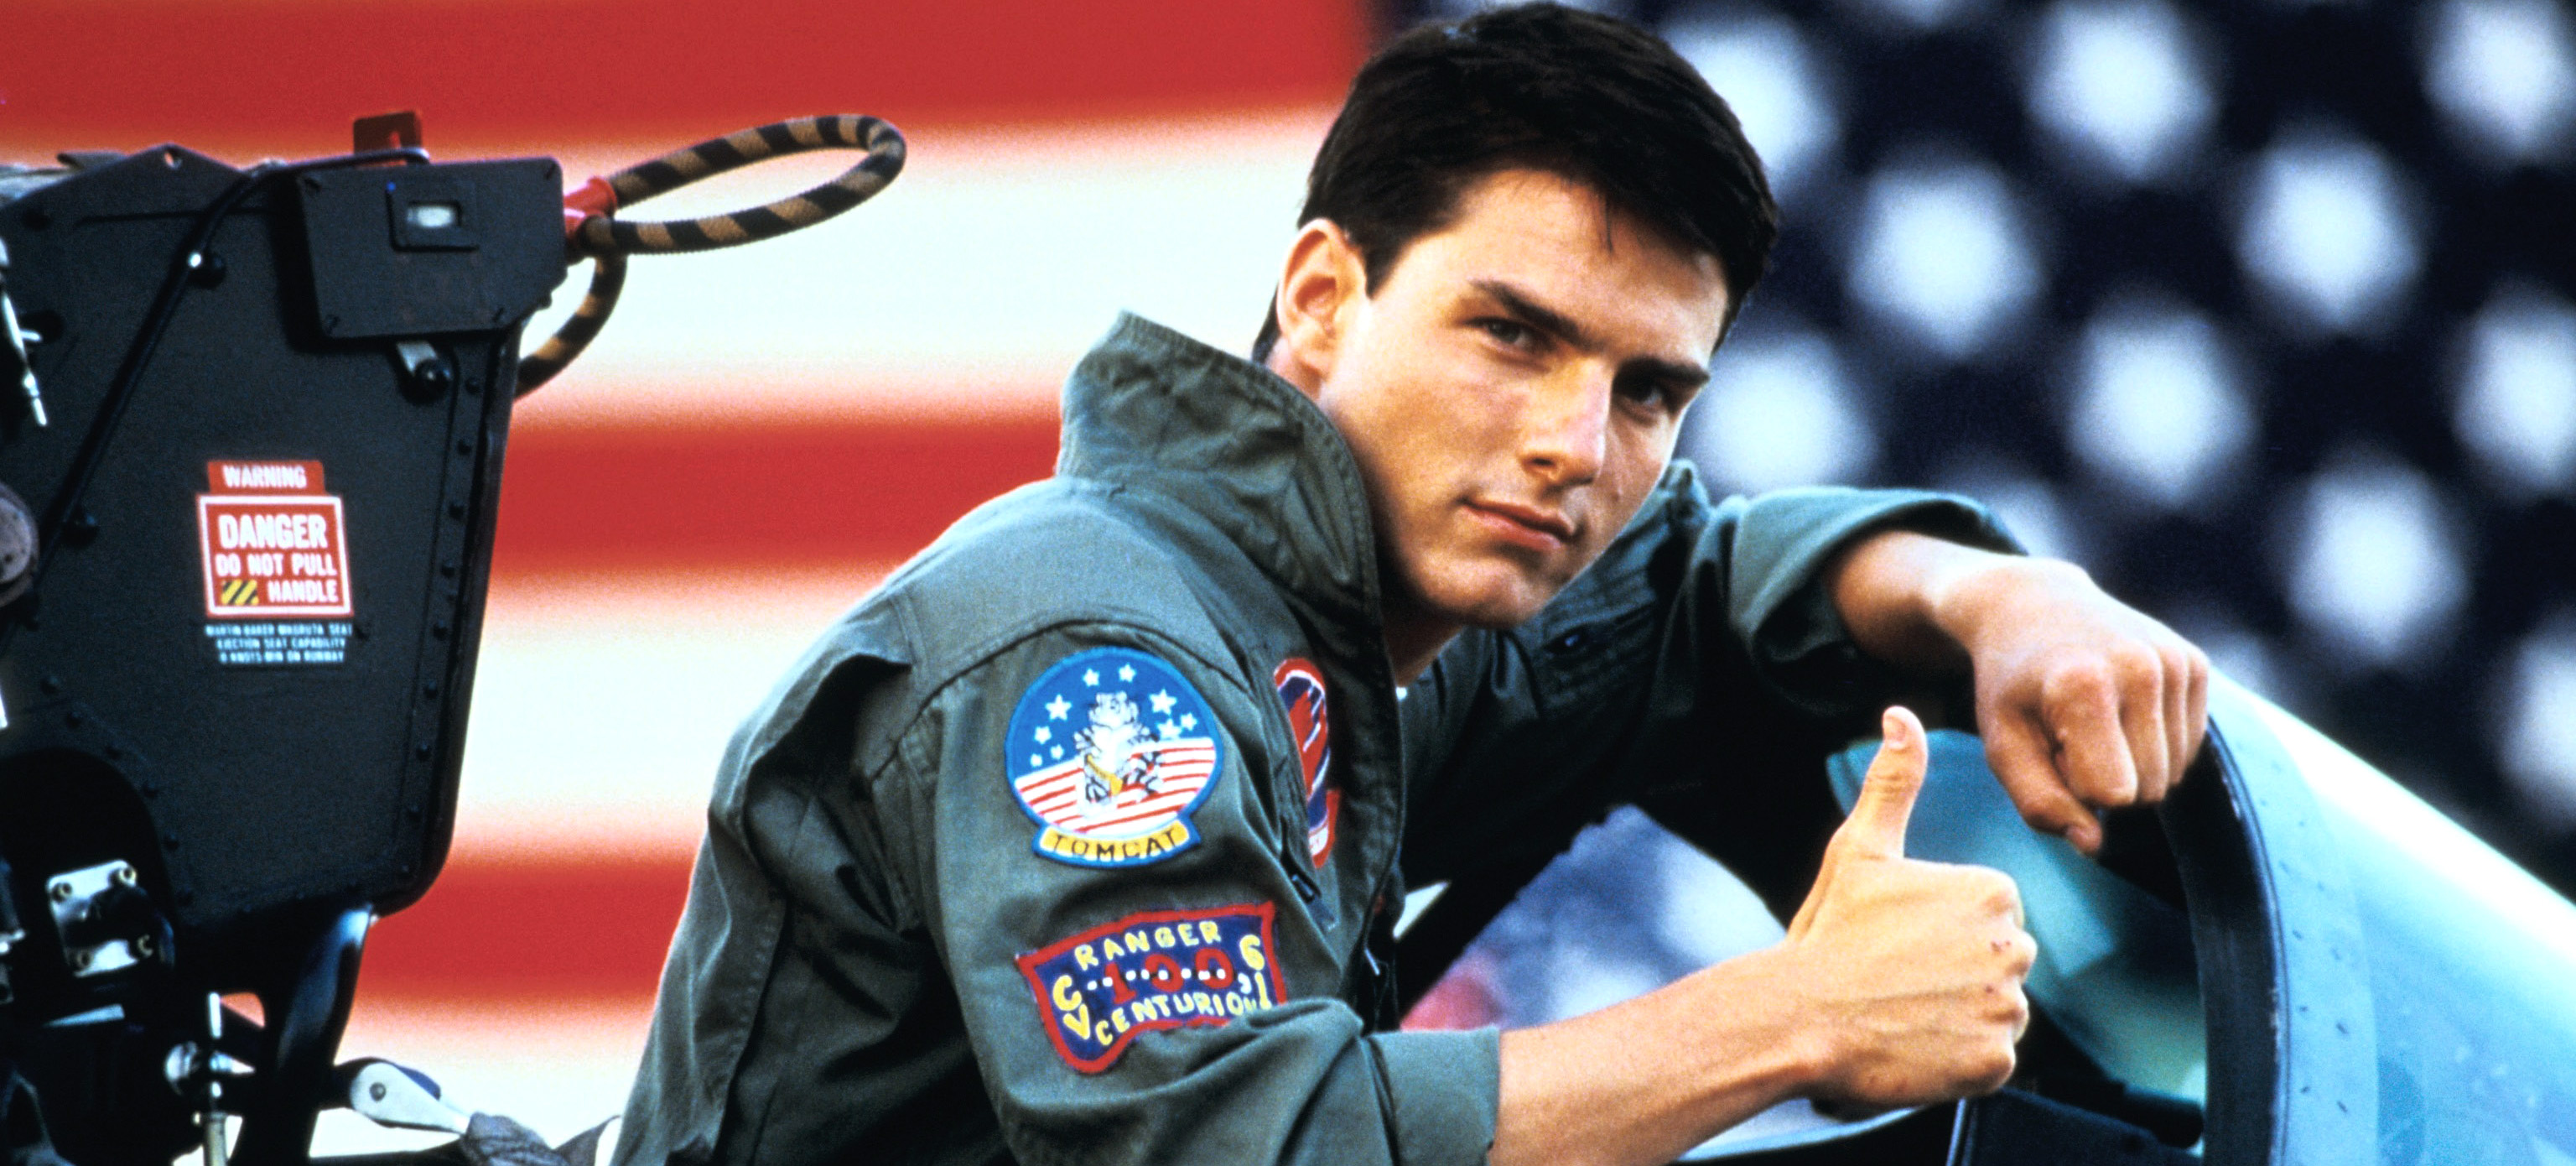 Top Gun 2 will give the audience what they want, says Jerry Bruckheimer